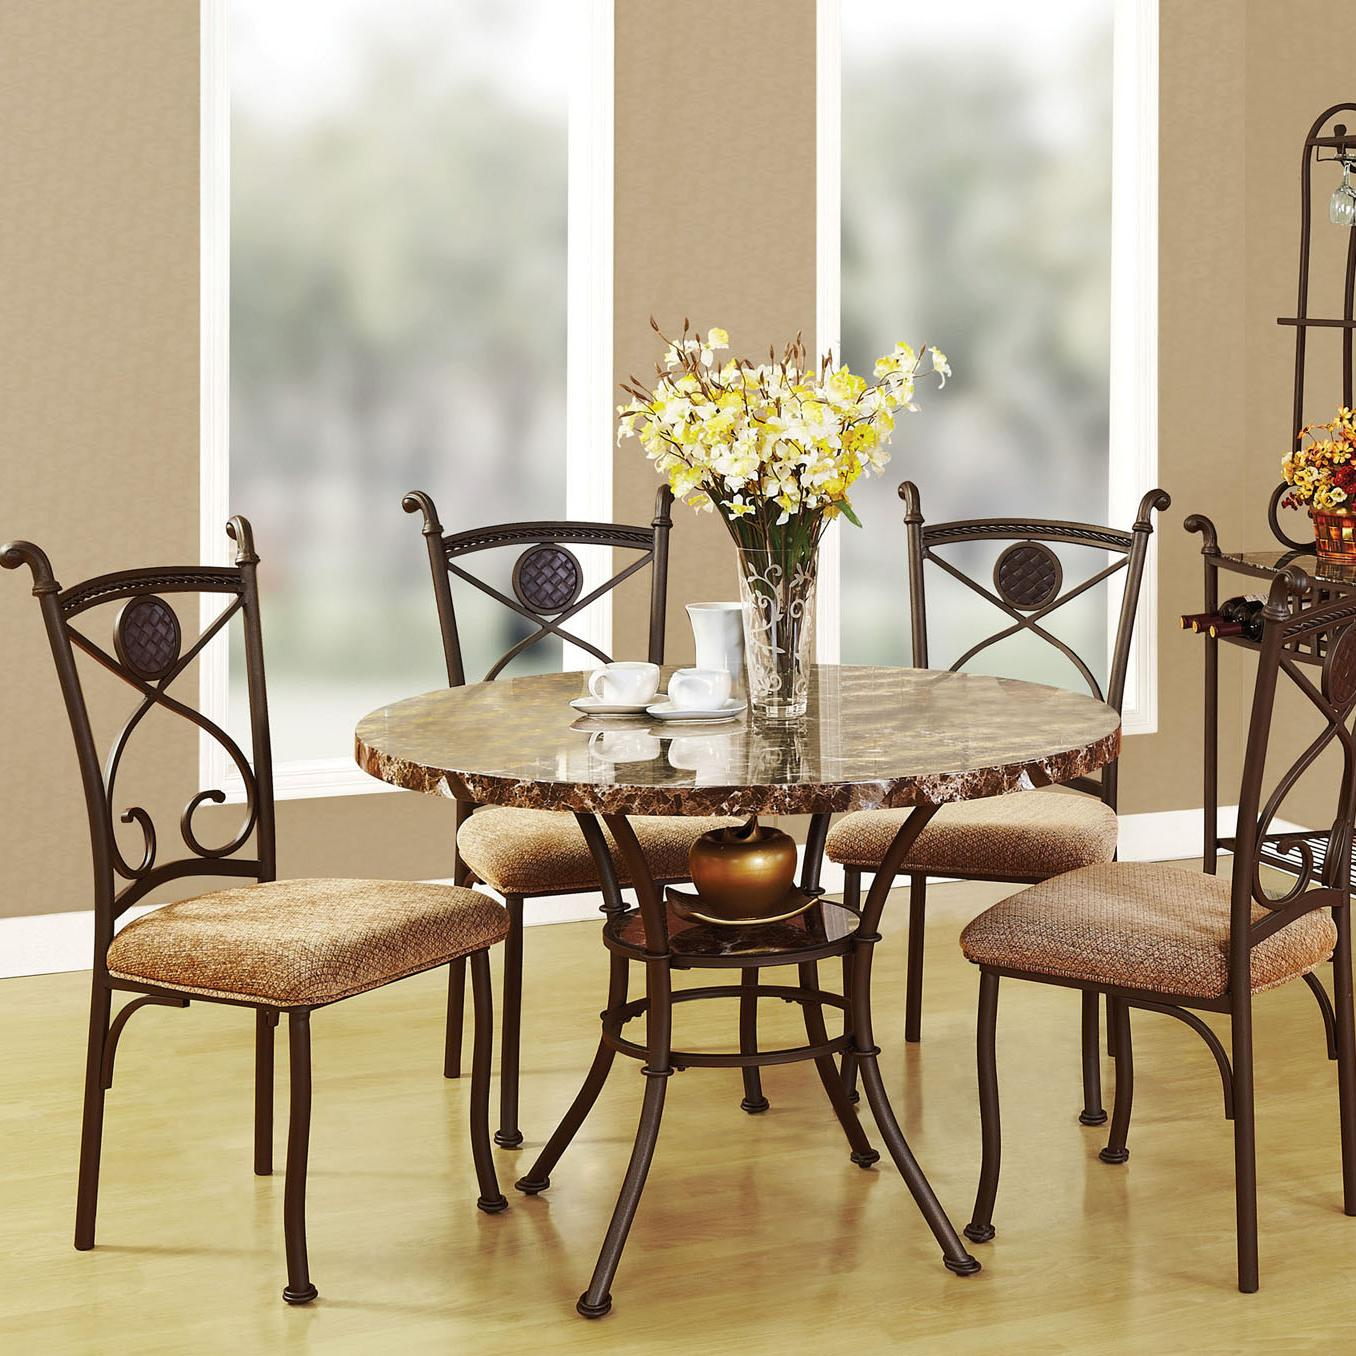 Acme furniture kleef 70555 casual 5 piece dining set del for Casual dining table and chairs